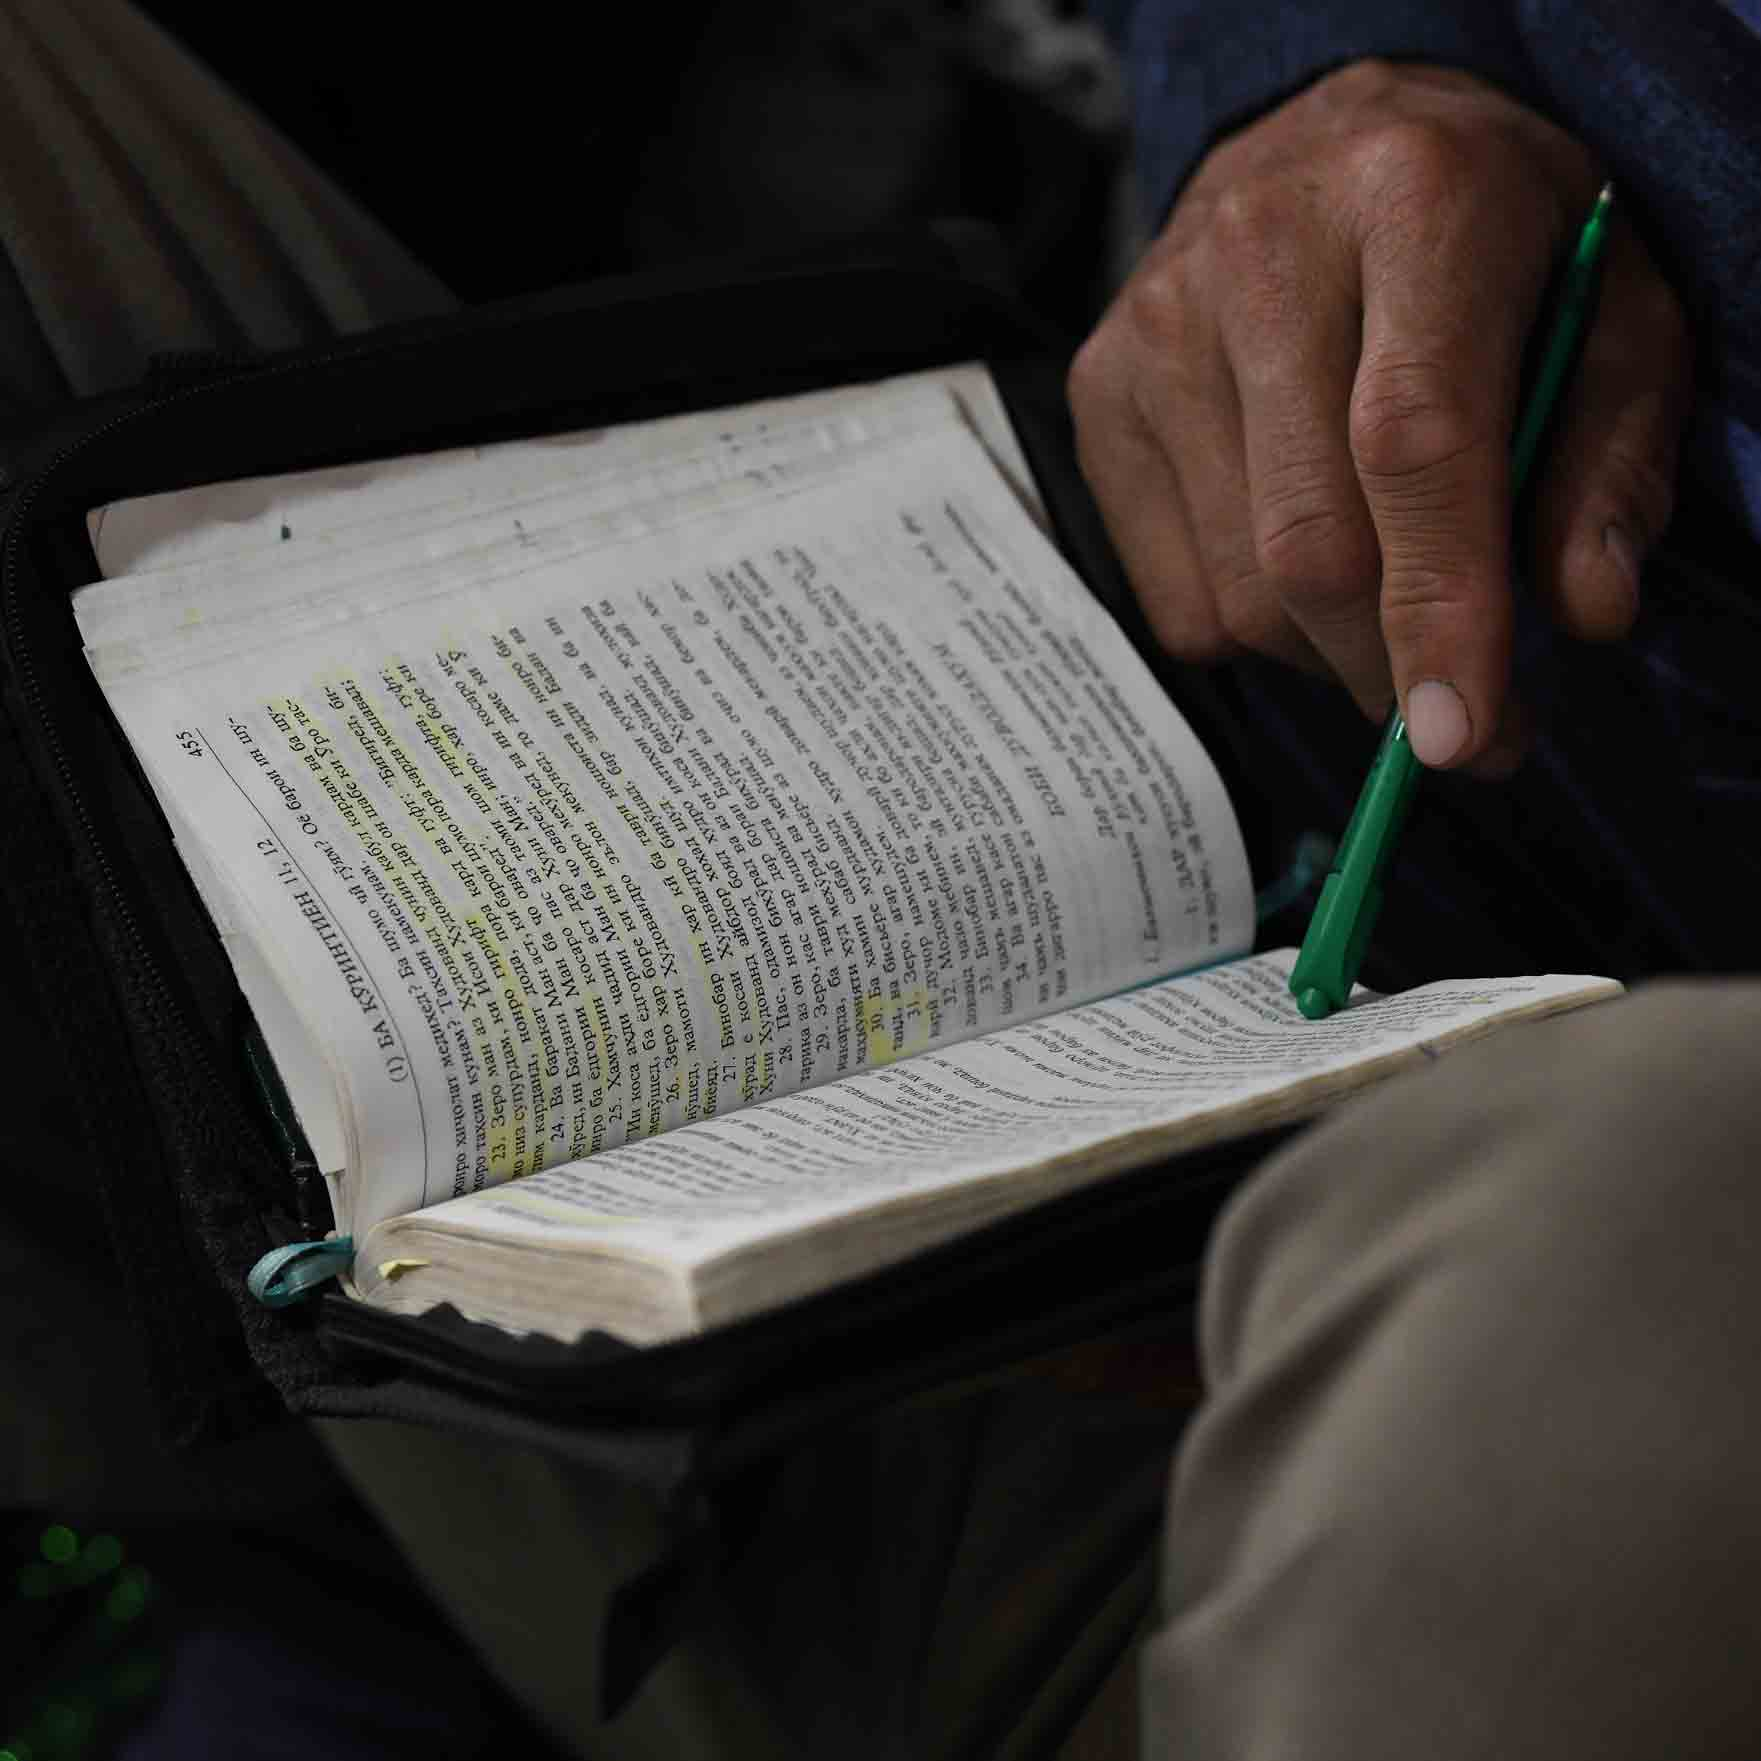 TAJIKISTAN  | APR. 24, 2020  – Church Leaders Fined for Translating the Bible